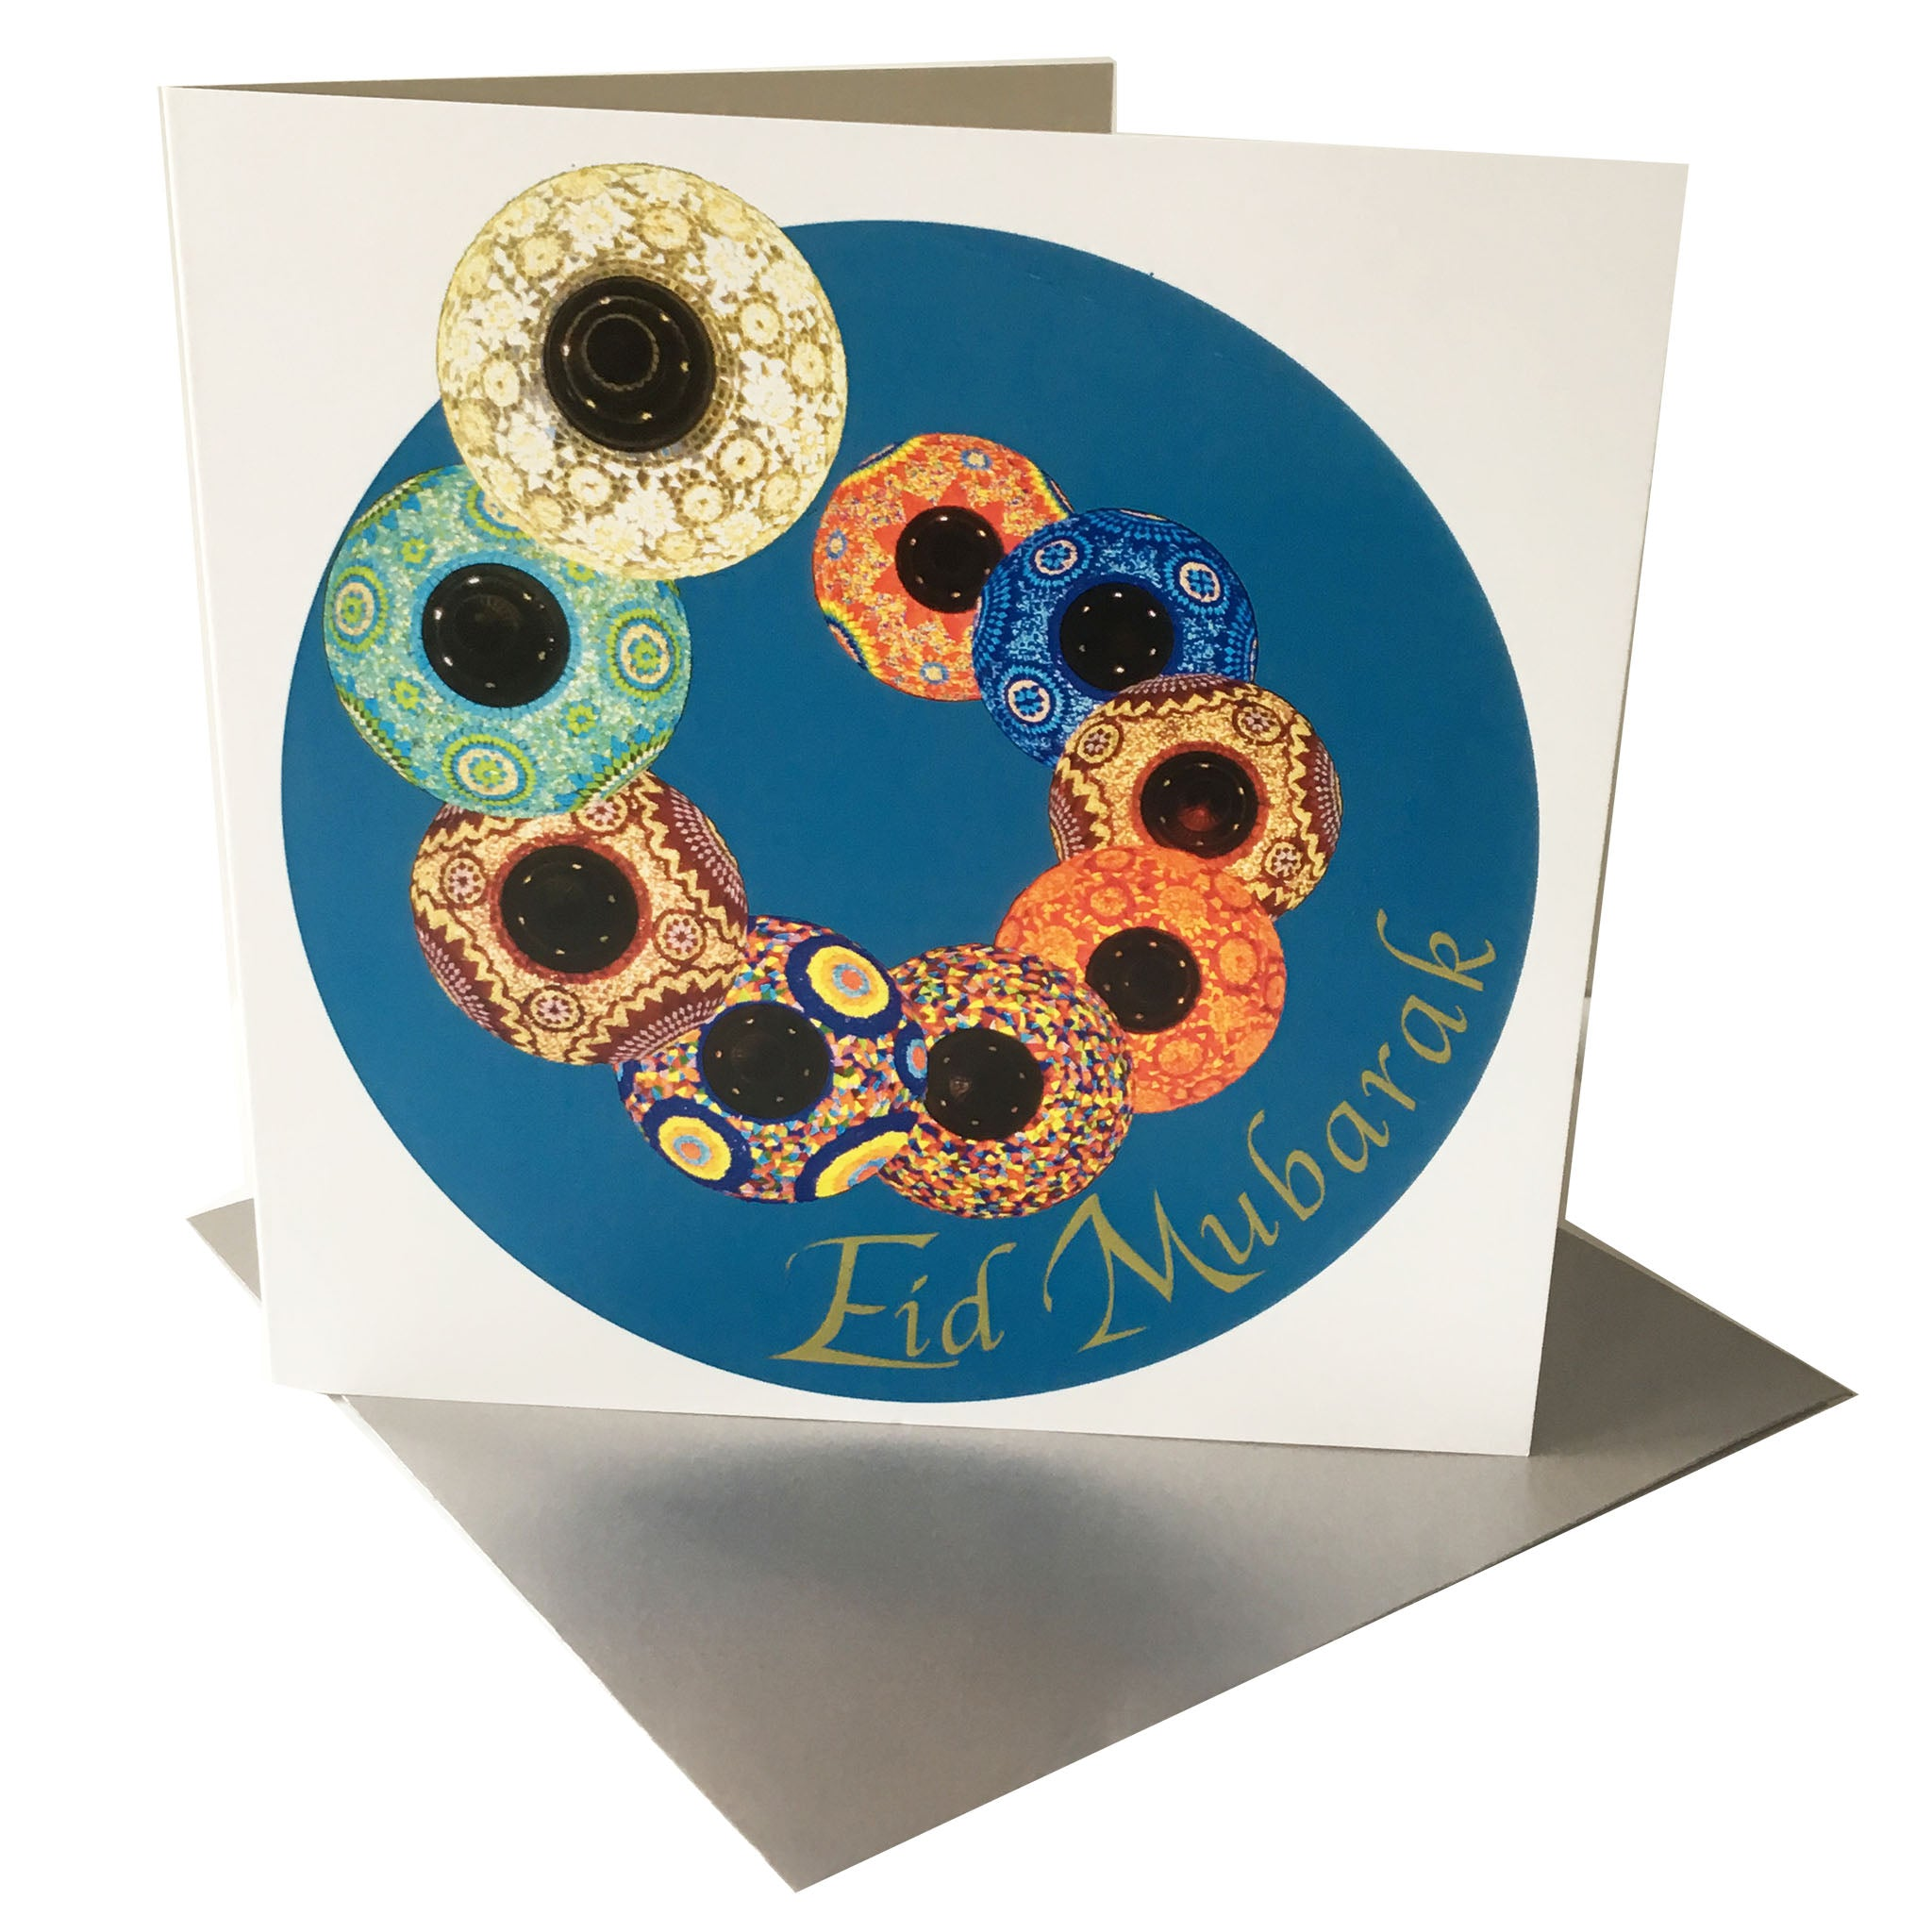 Eid Greetings Card with silver envelope